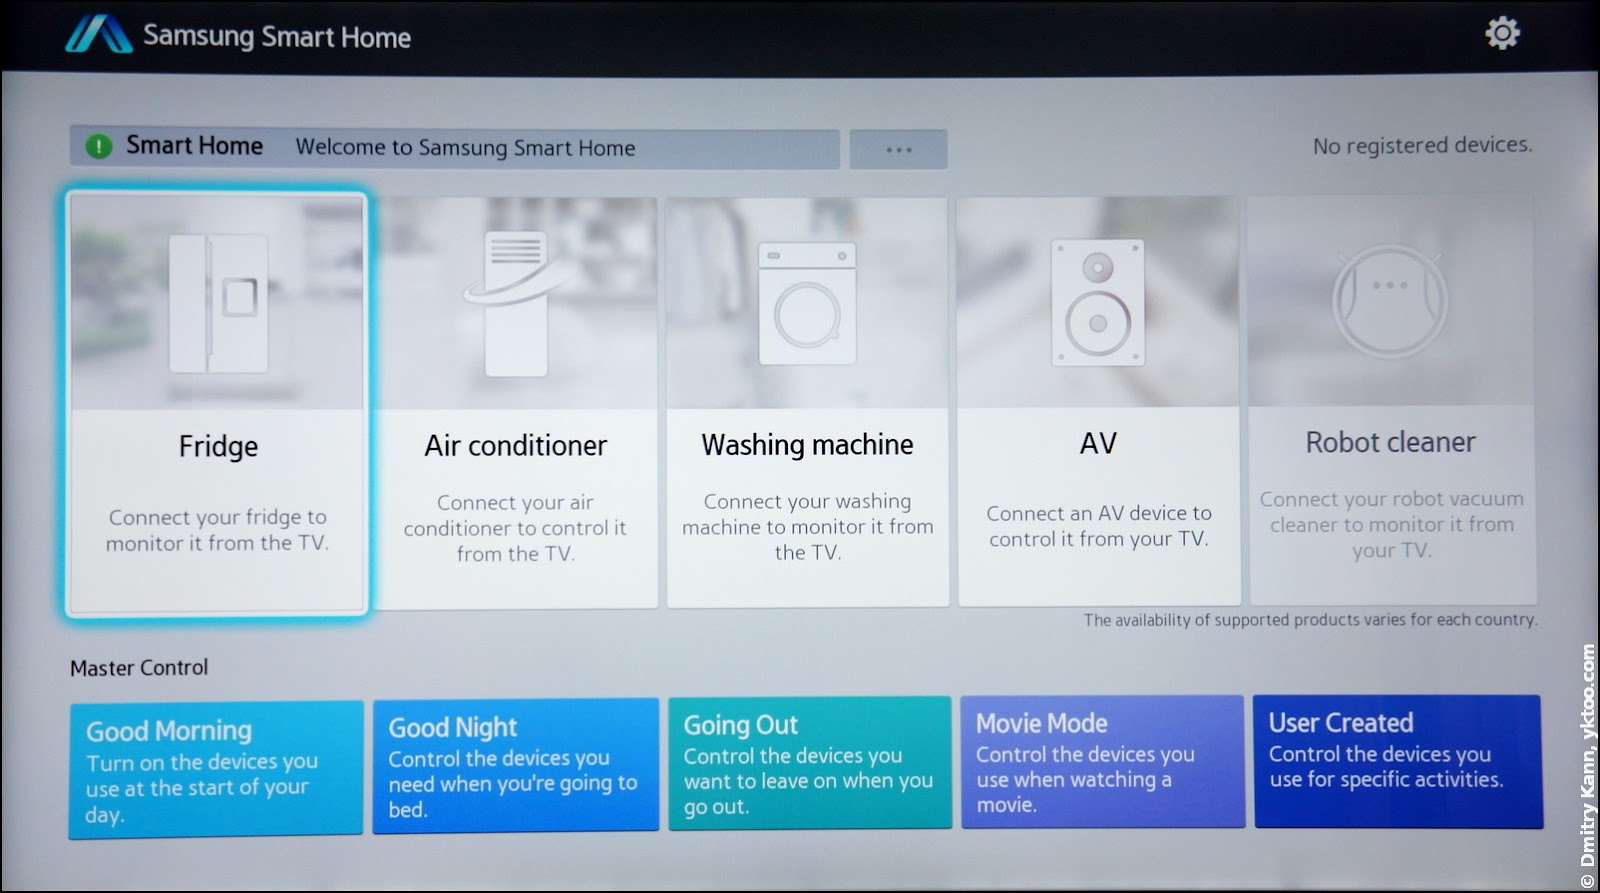 Samsung Smart Home.